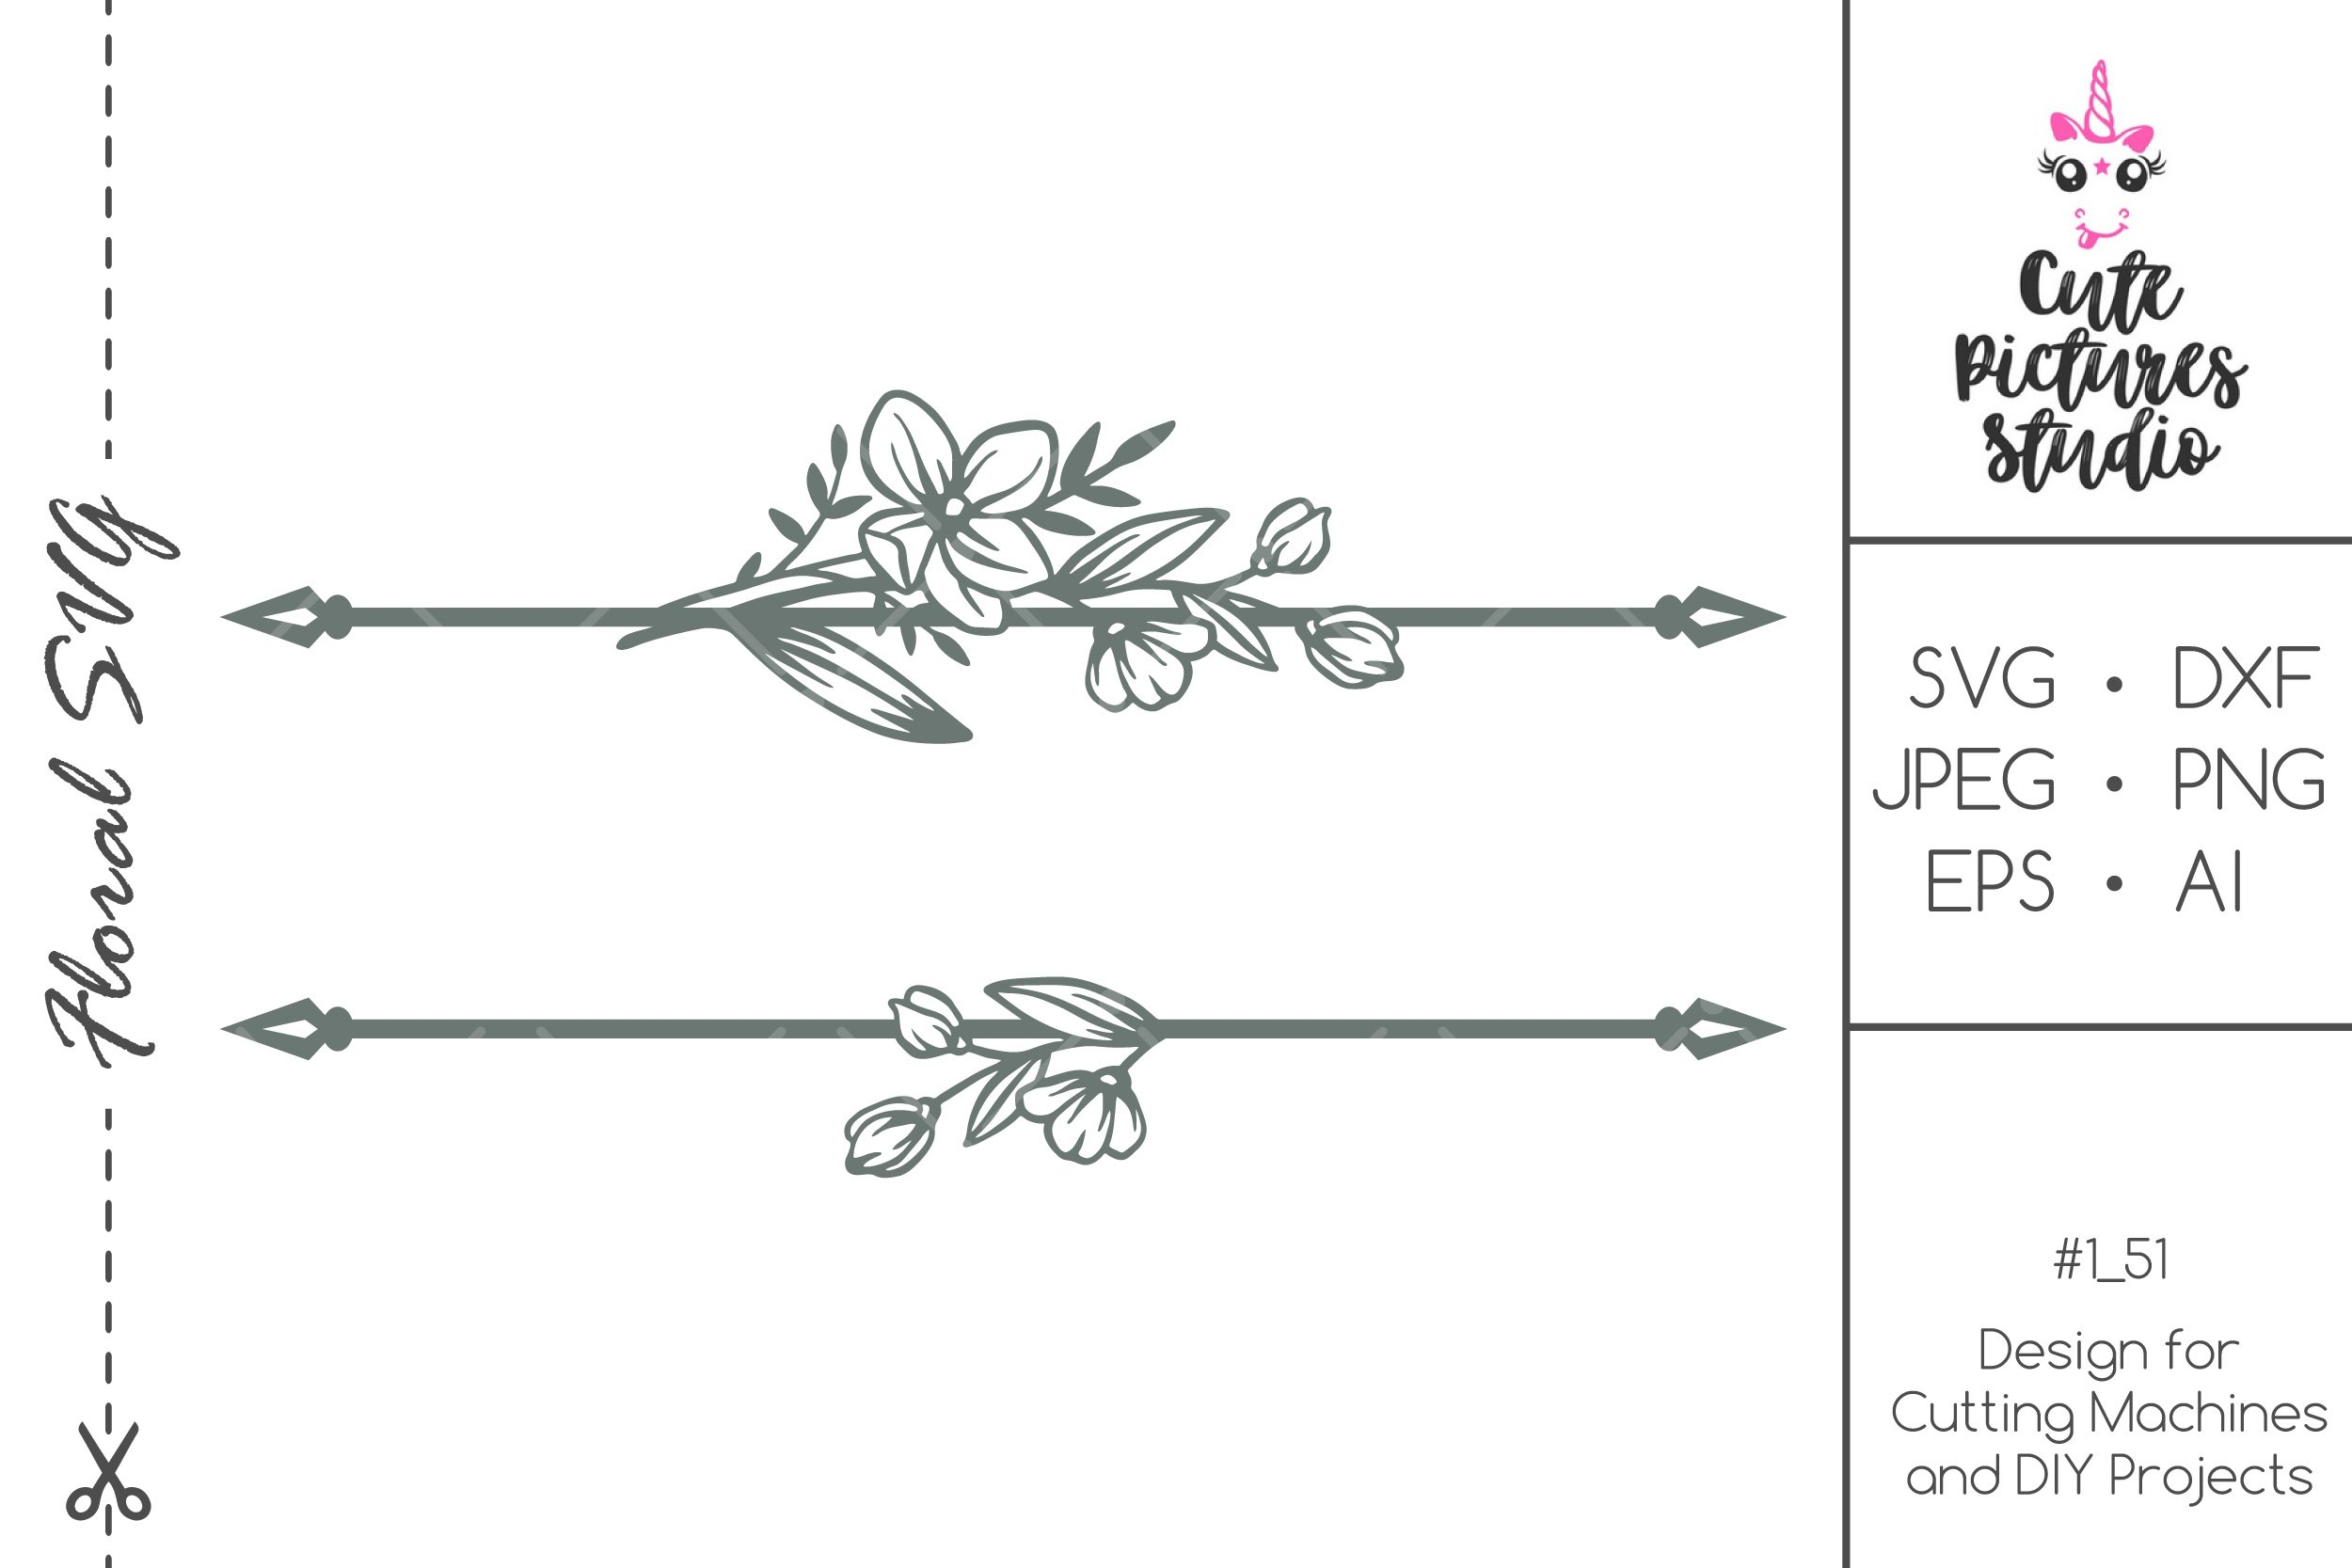 Wedding monogram frame with wildflowers SVG DXF PNG cut file example image 1